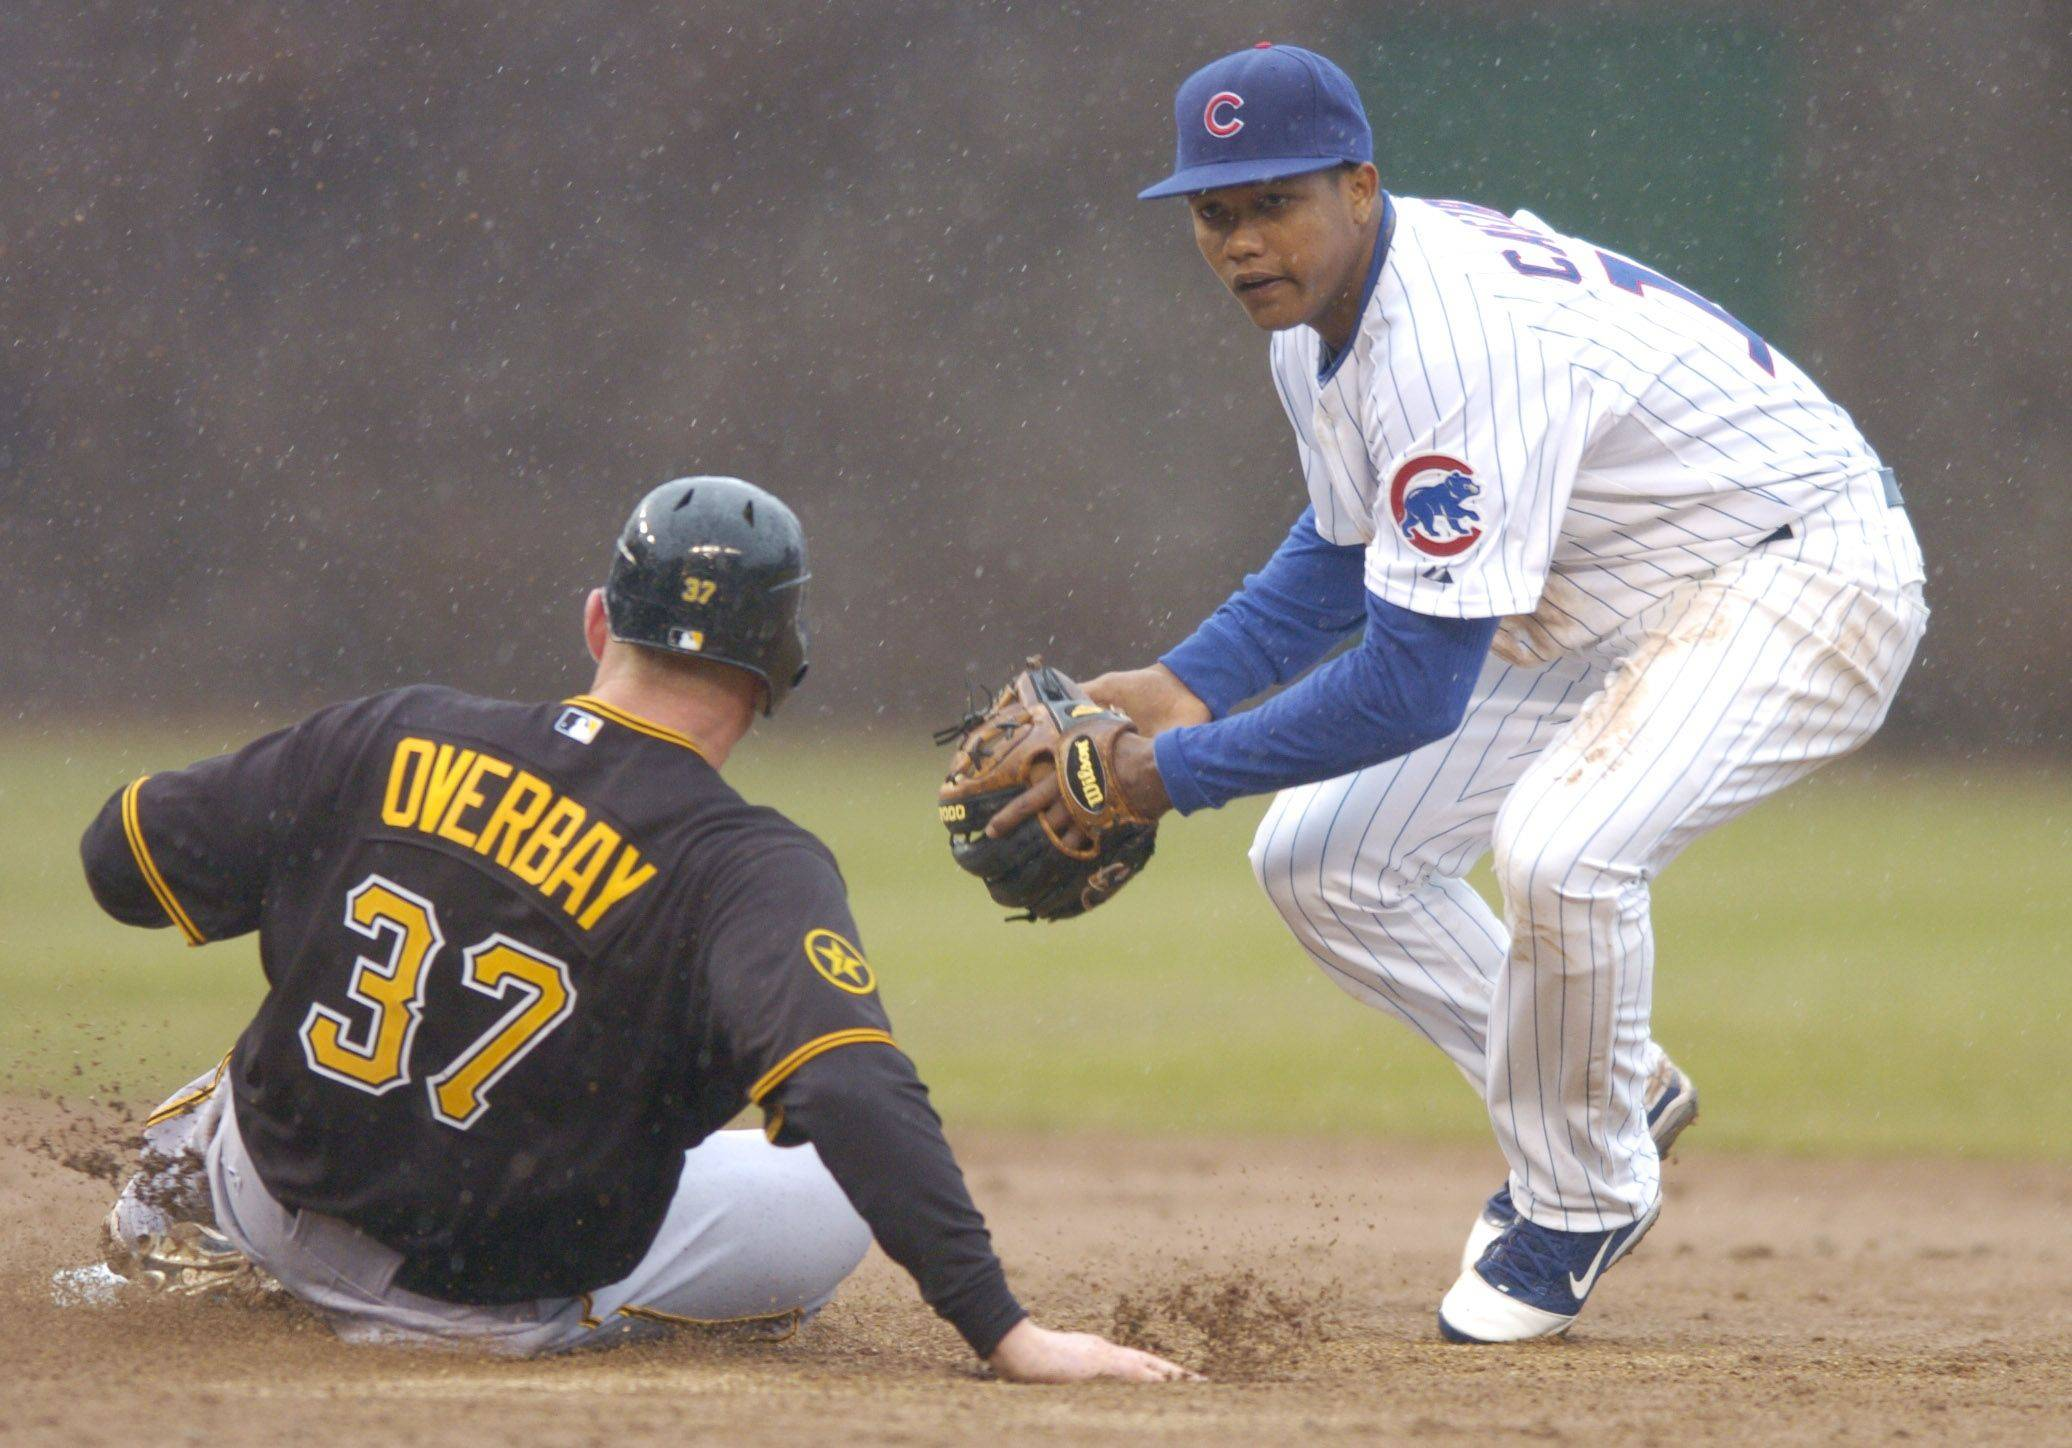 Starlin Castro of the Cubs is able to force Lyle Overbay of the Pirates but can't make the throw for a double play.